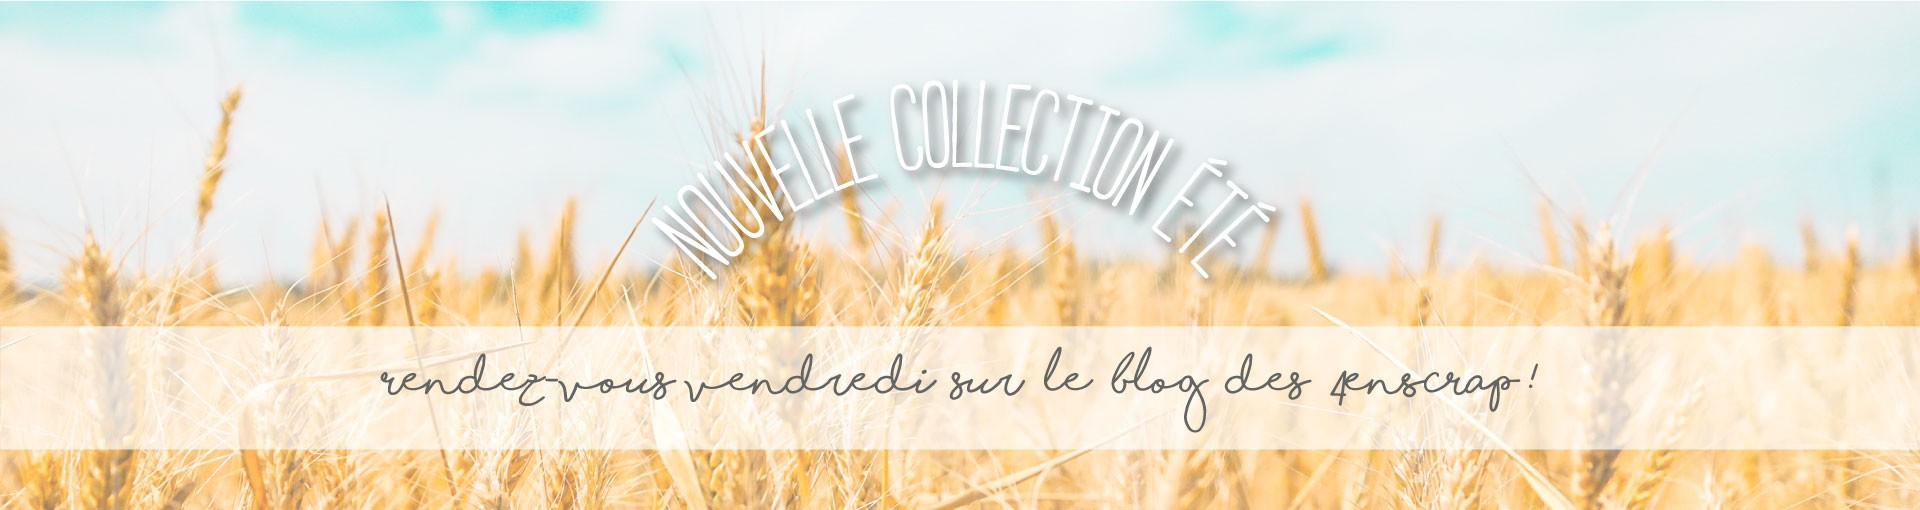 La nouvelle collection arrive!